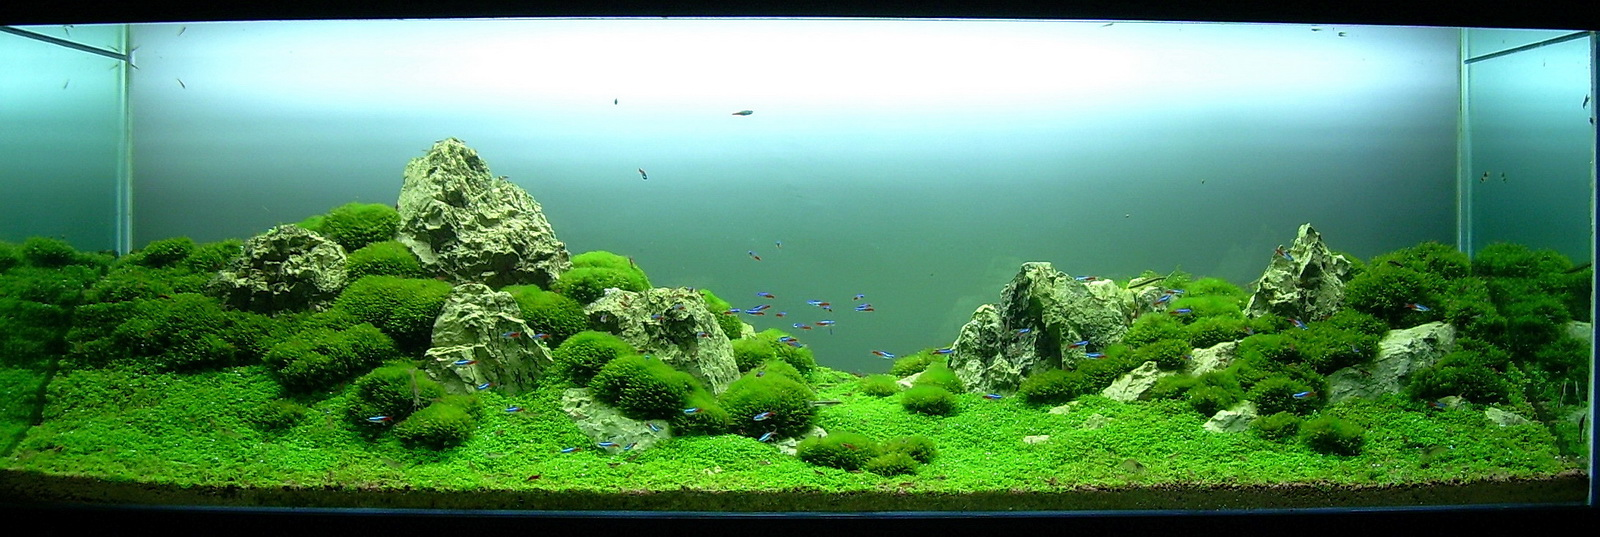 The Art of Aquascaping Joe Blogs